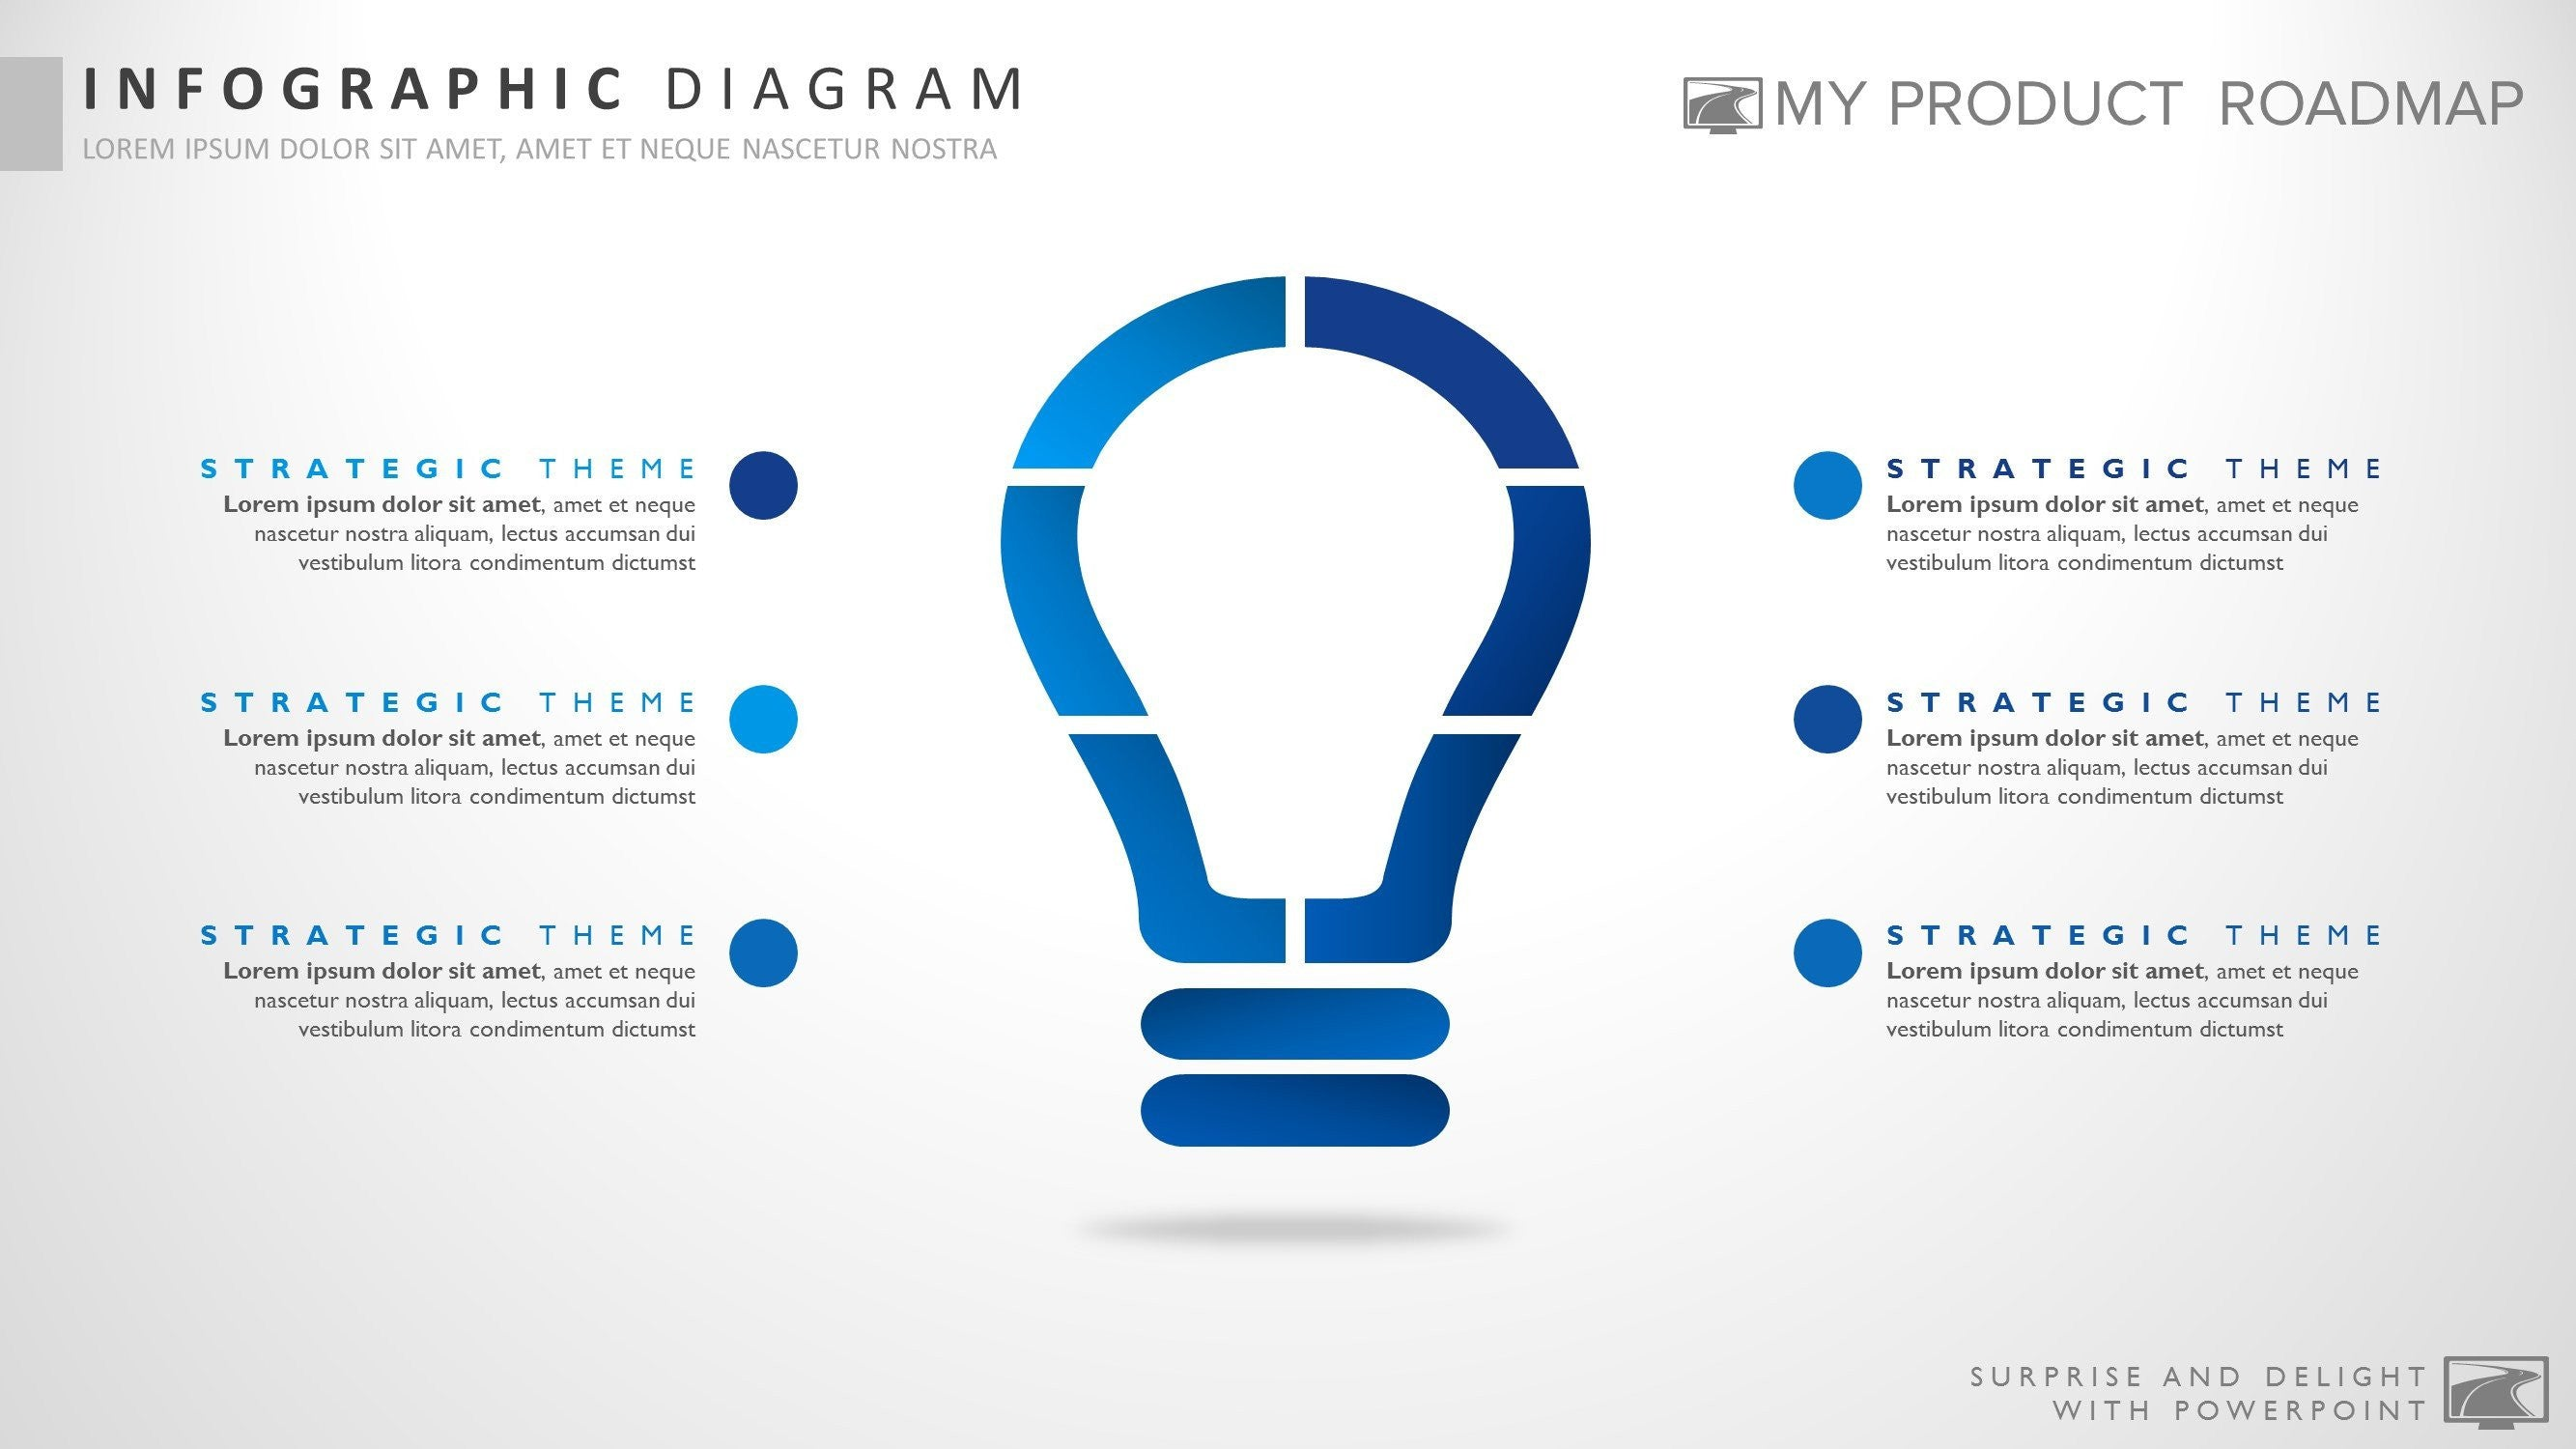 six element powerpoint strategy infographic presentation diagram